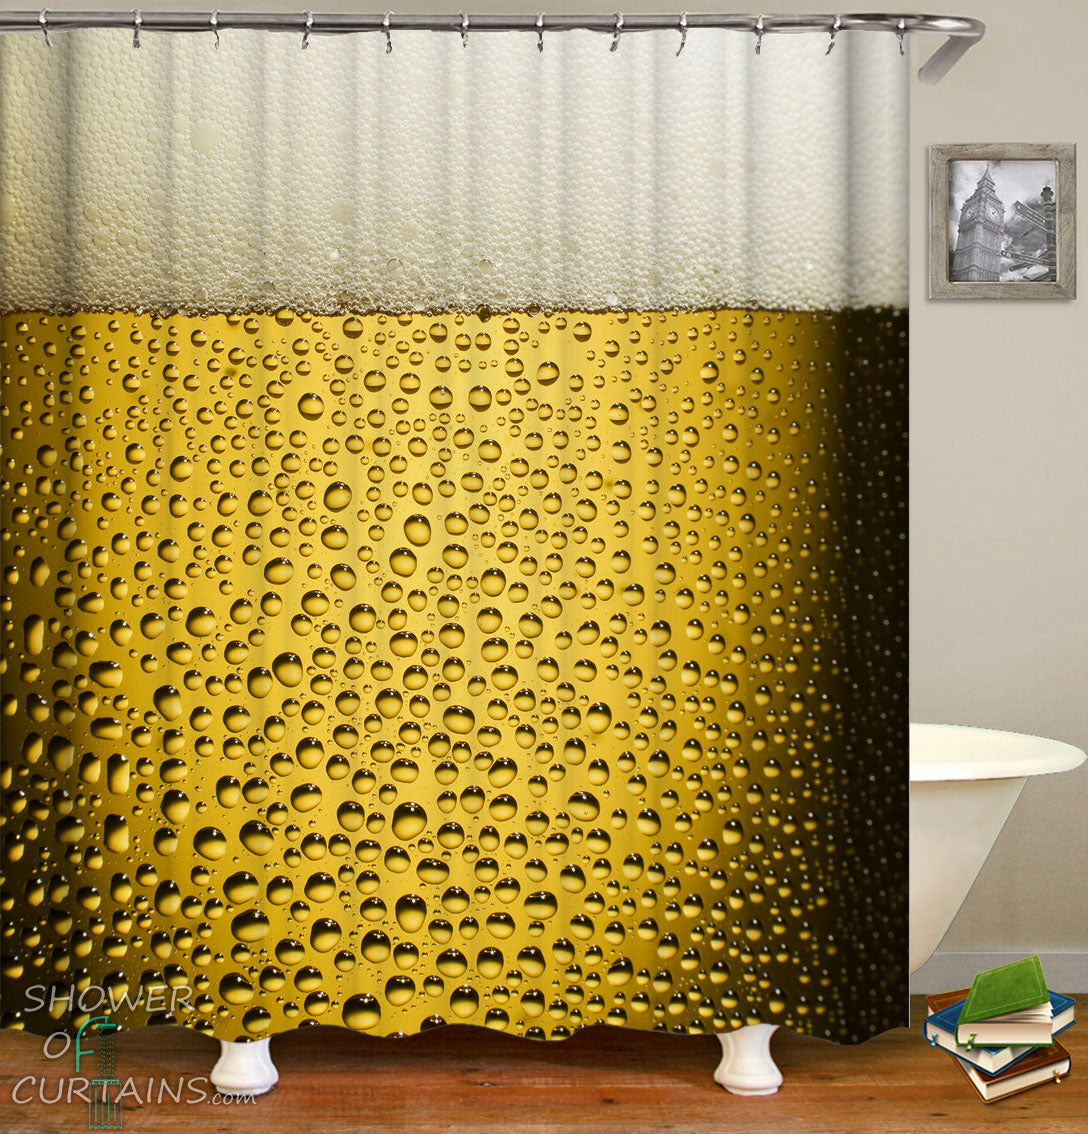 Shower Curtains Ice Cold Beer Shower Of Curtains